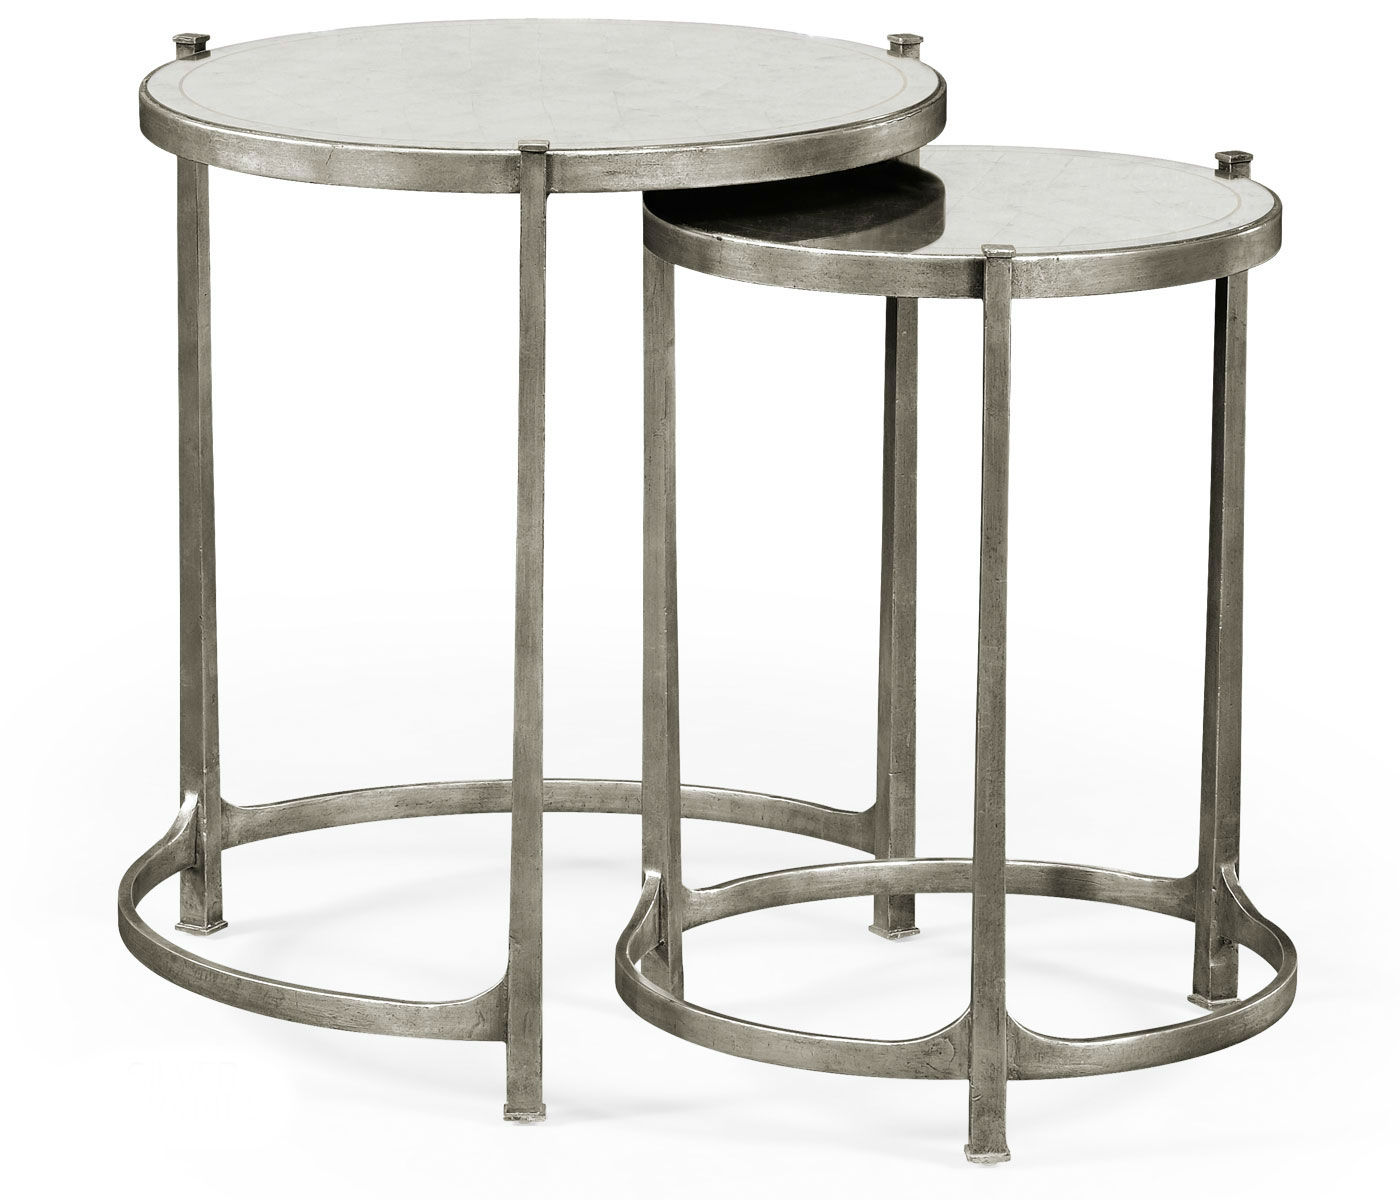 nesting tables silver side table small accent elegant tall antiqued mirrored partner end console coffee available hospitality grey green paint diy marble mission lamp wood drum